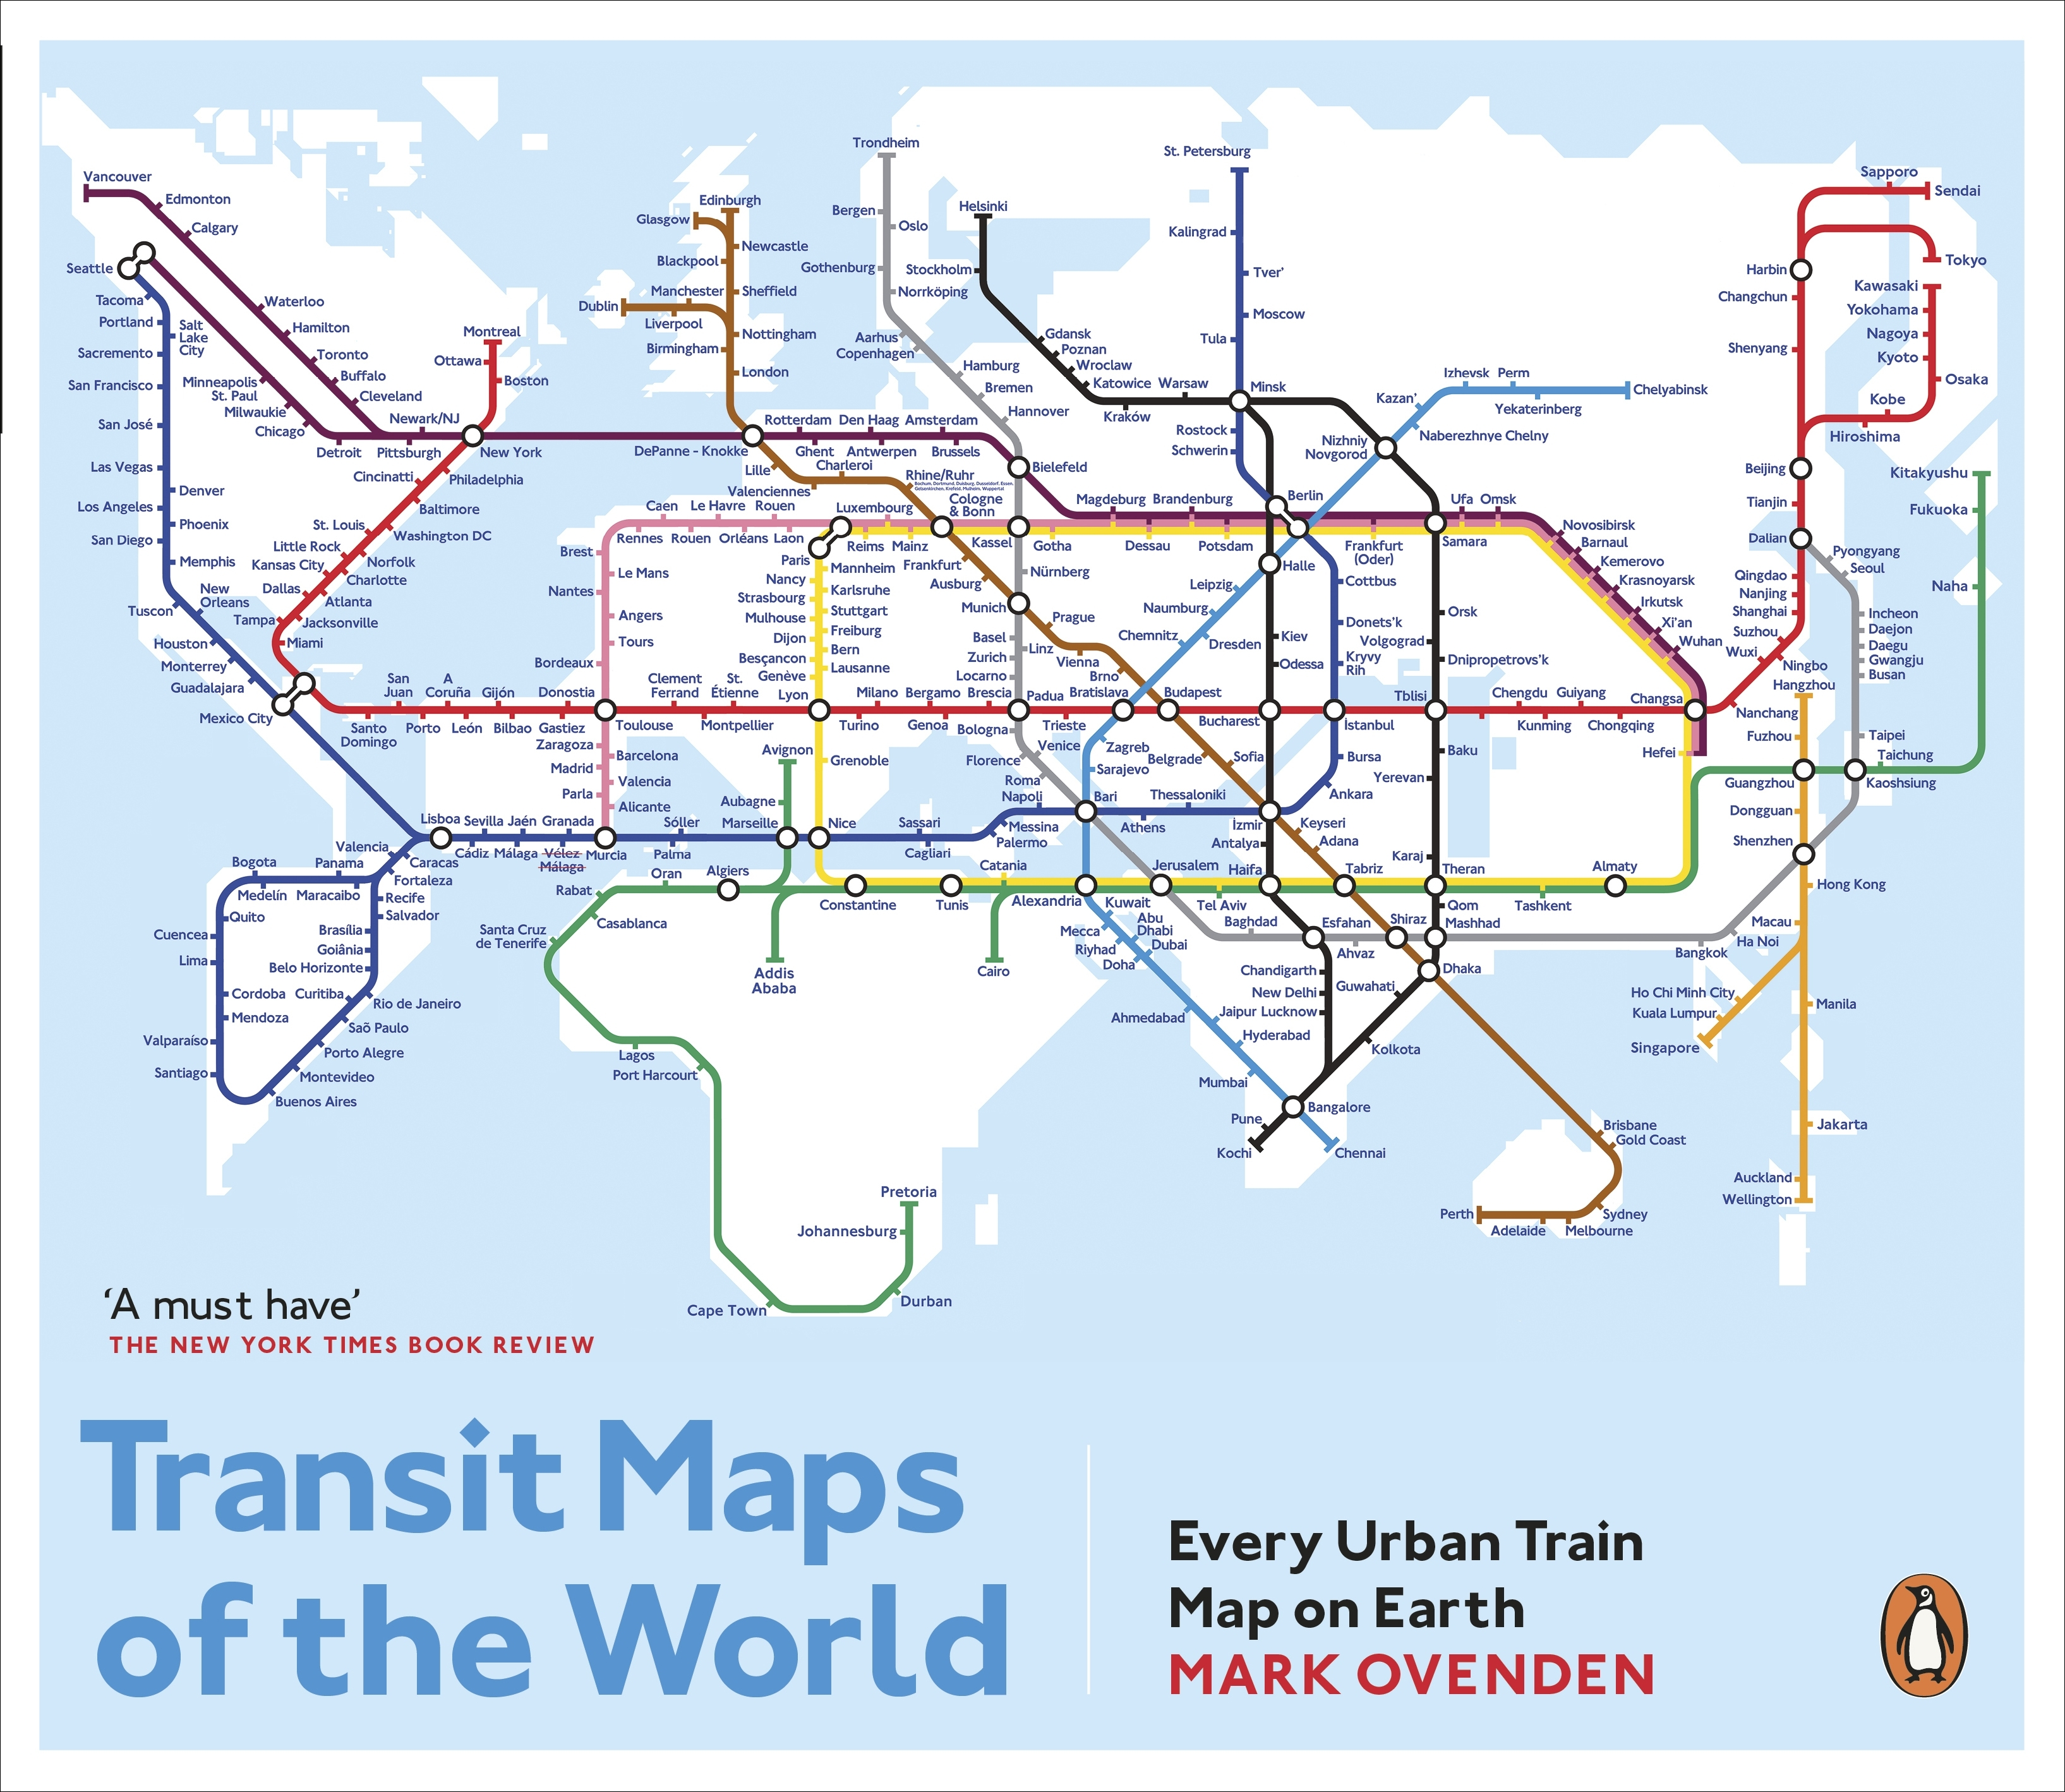 Transit maps of the world by mark ovenden penguin books australia hi res cover transit maps of the world publicscrutiny Choice Image